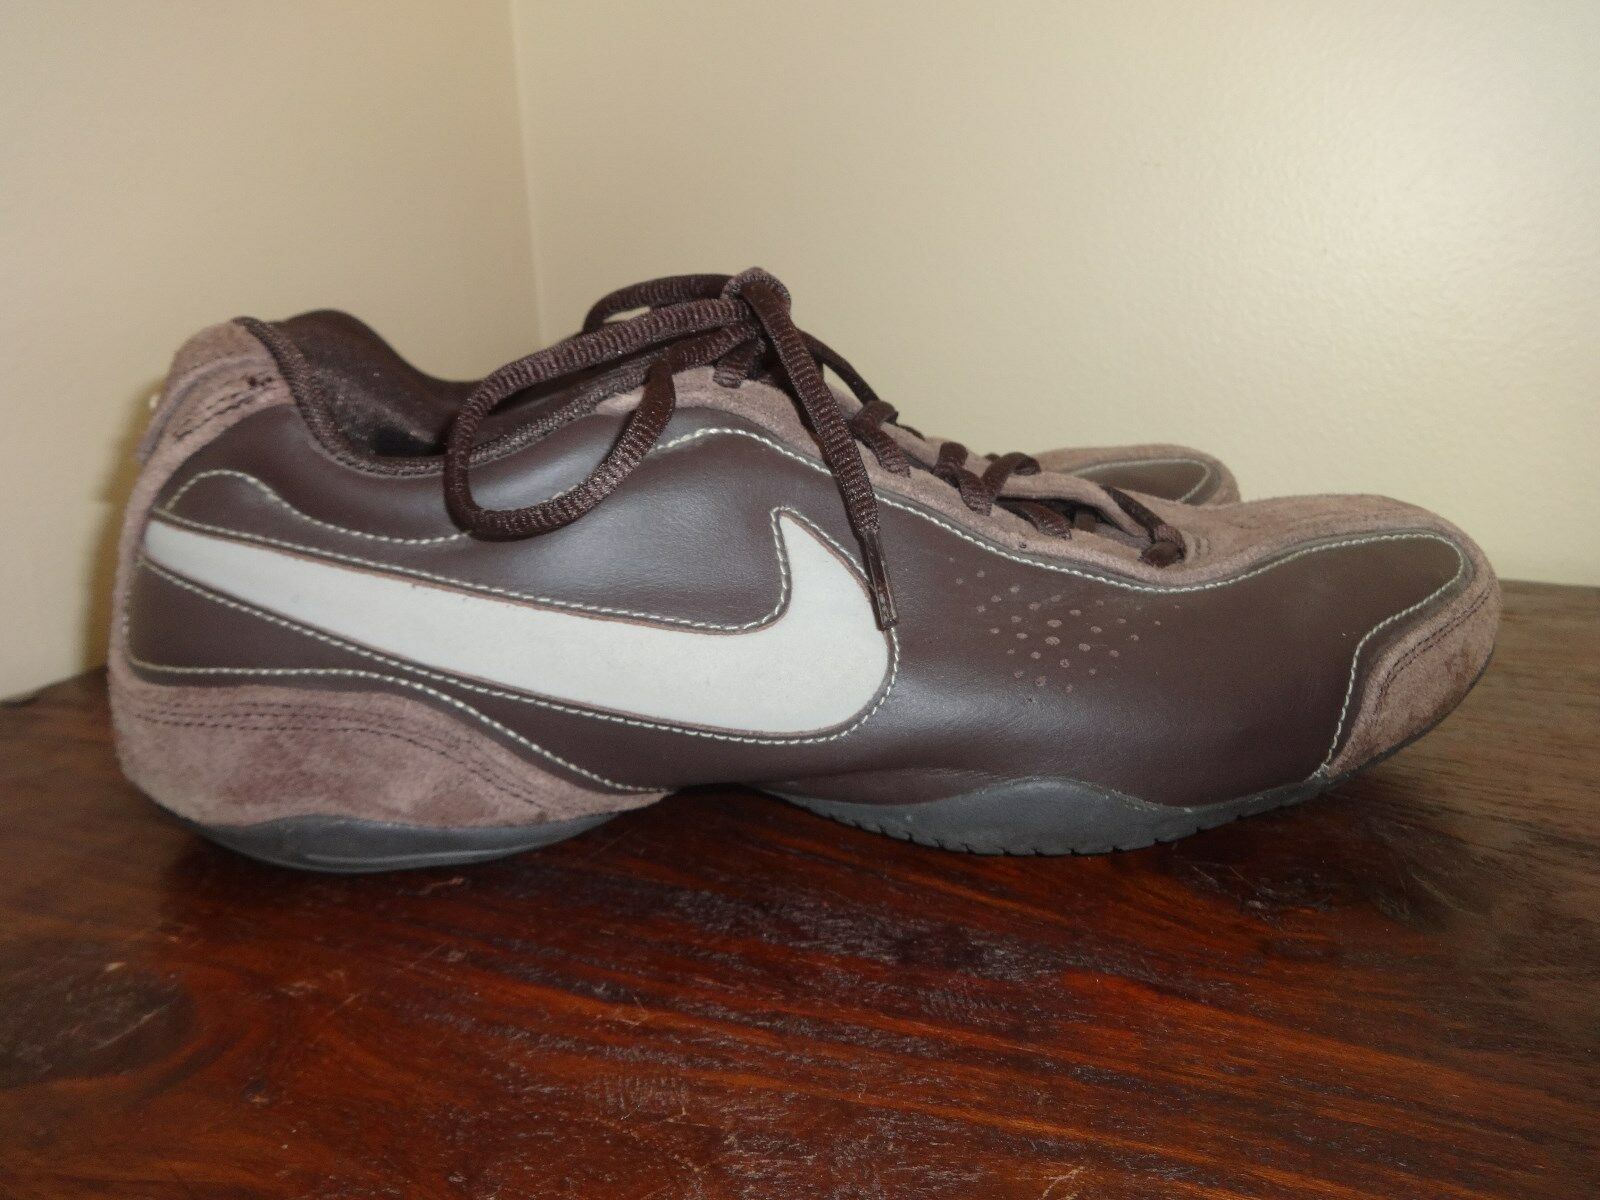 NIKE AIR Retro Brown Suede Leather Athletic Shoes Men's Size 10